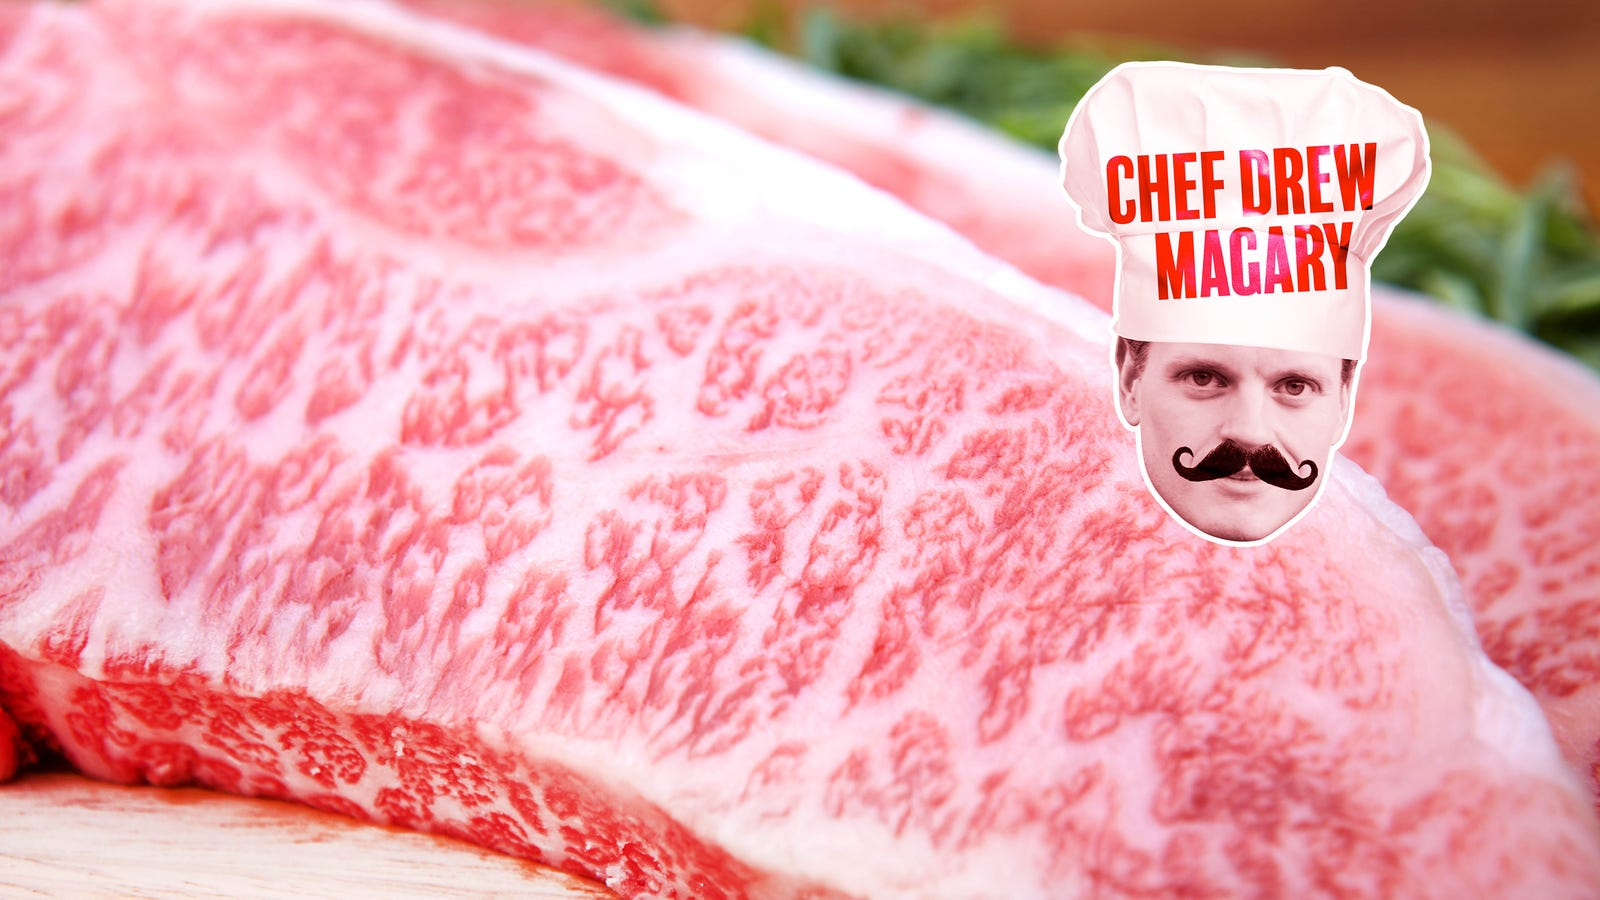 My mission to ruin a $250 Wagyu steak nearly destroyed my family